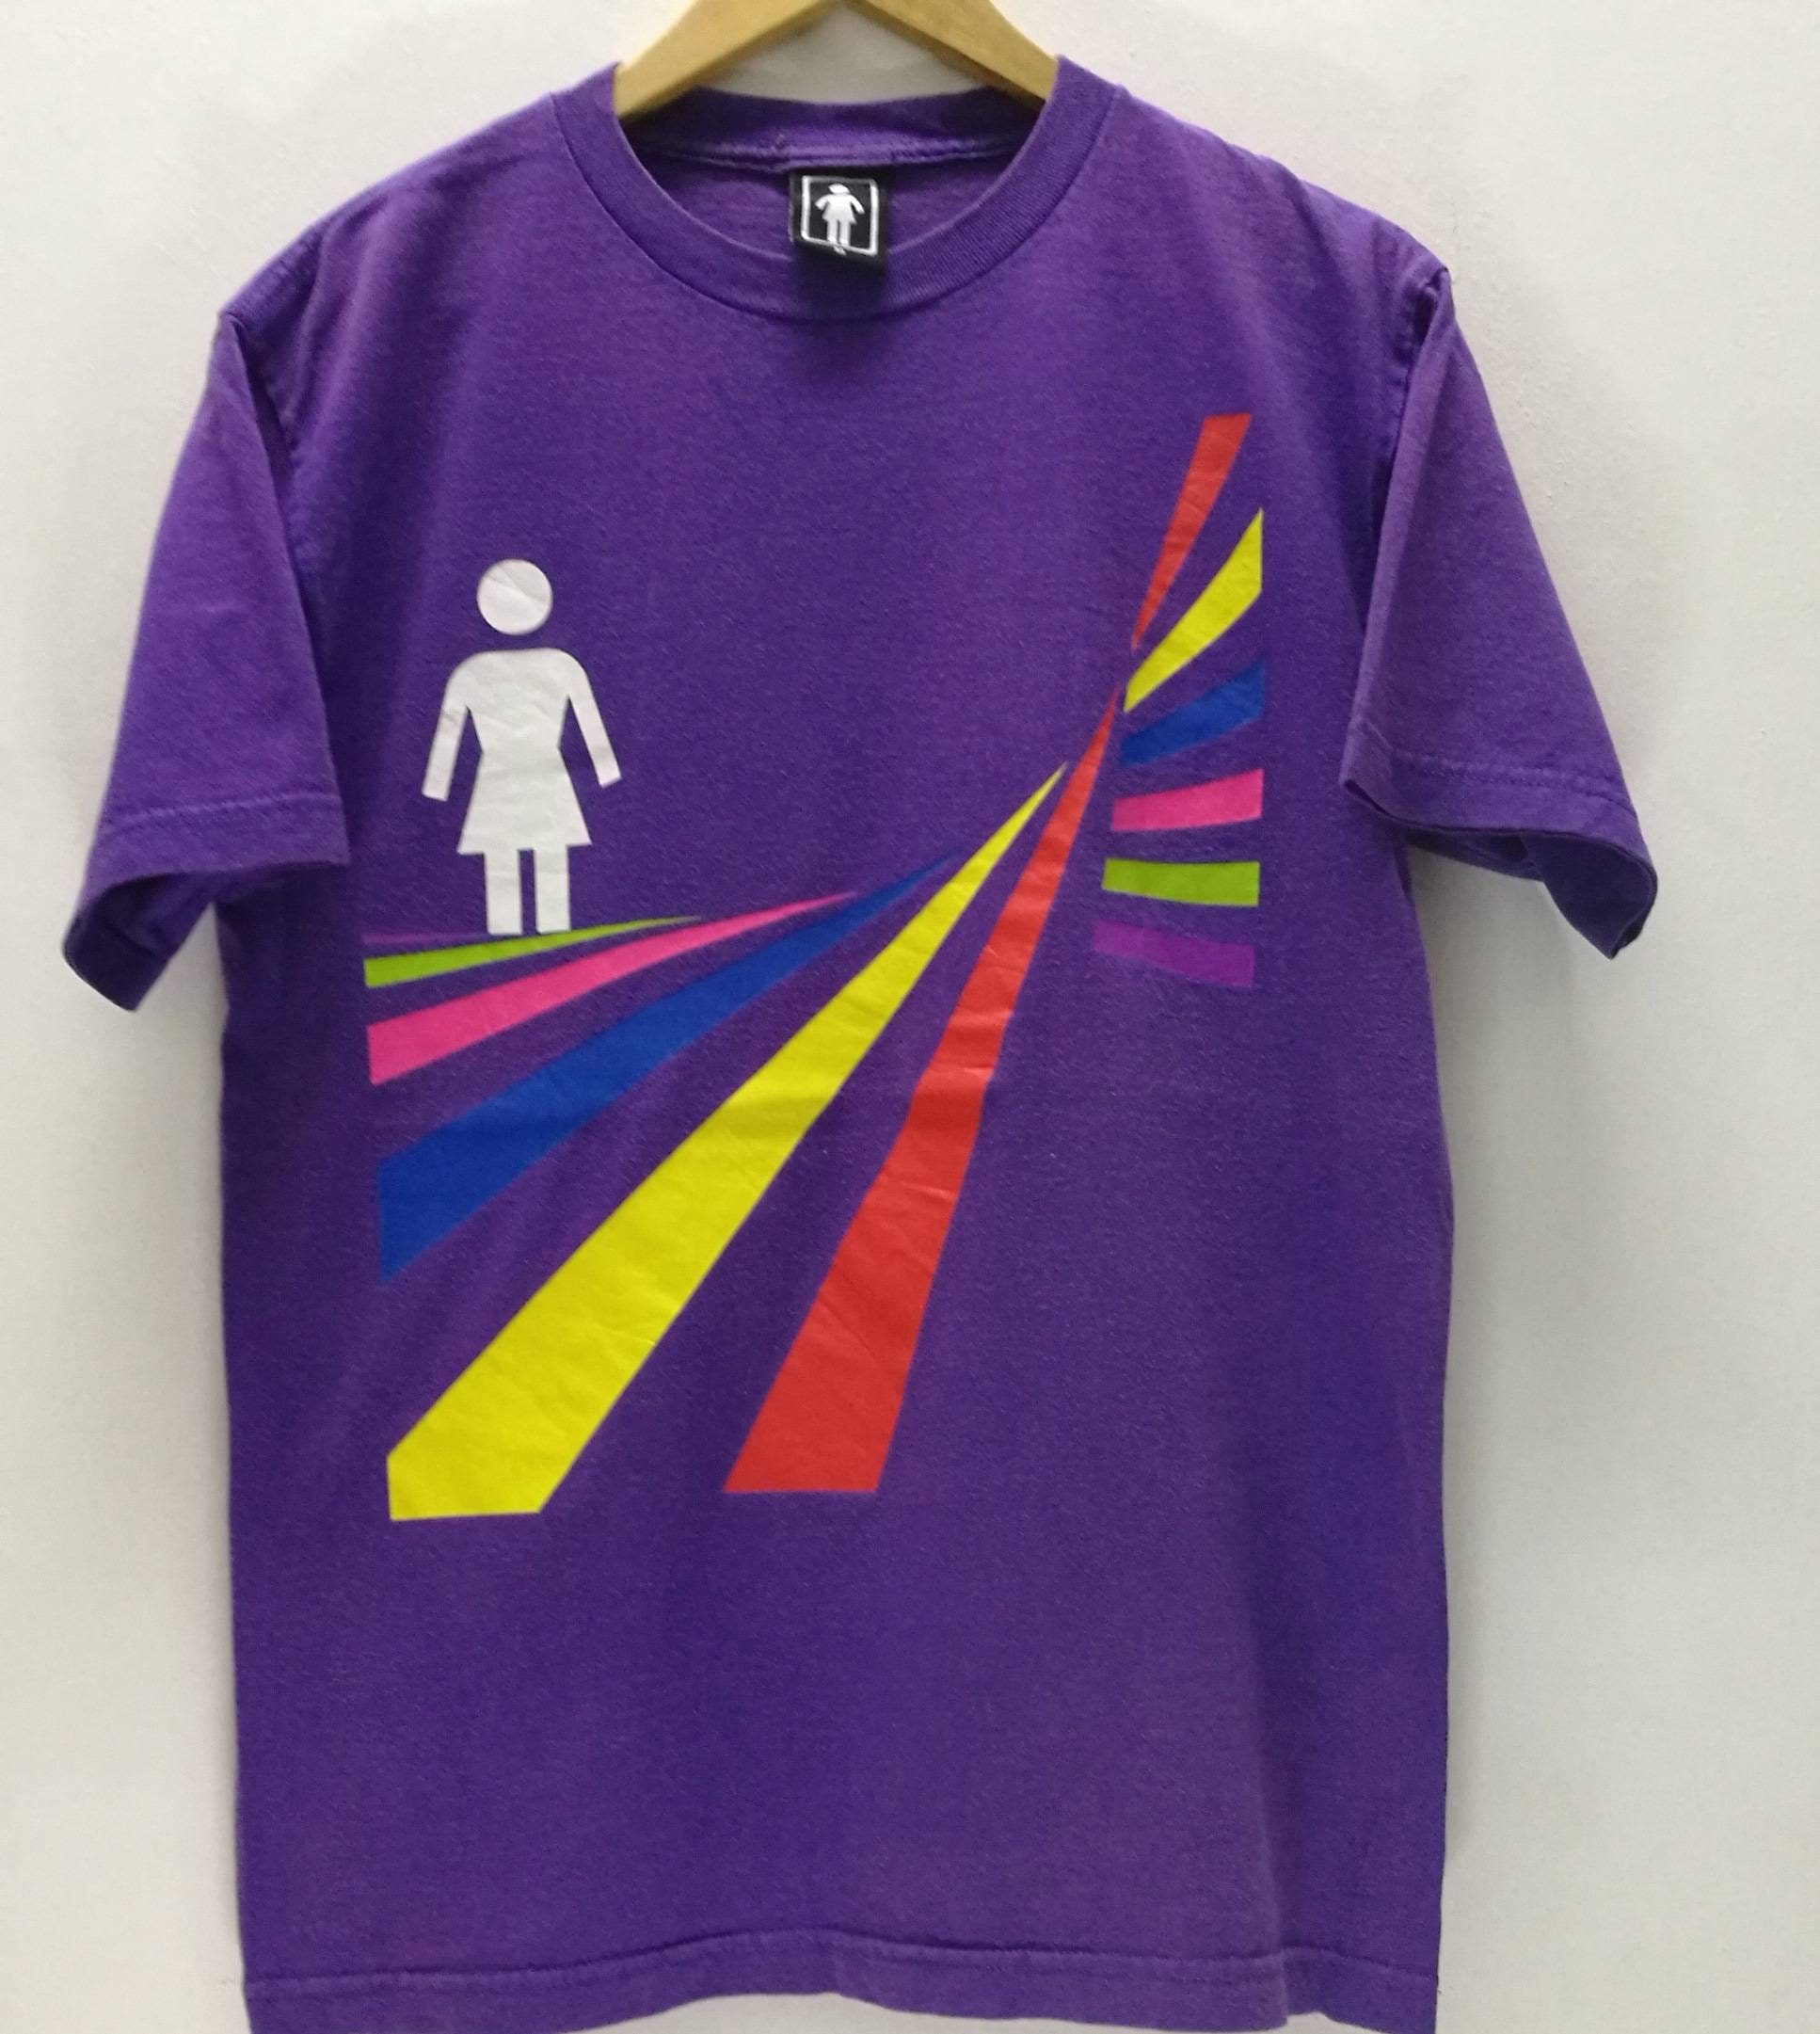 Girl Skateboards Shirts | Coolmine Community School